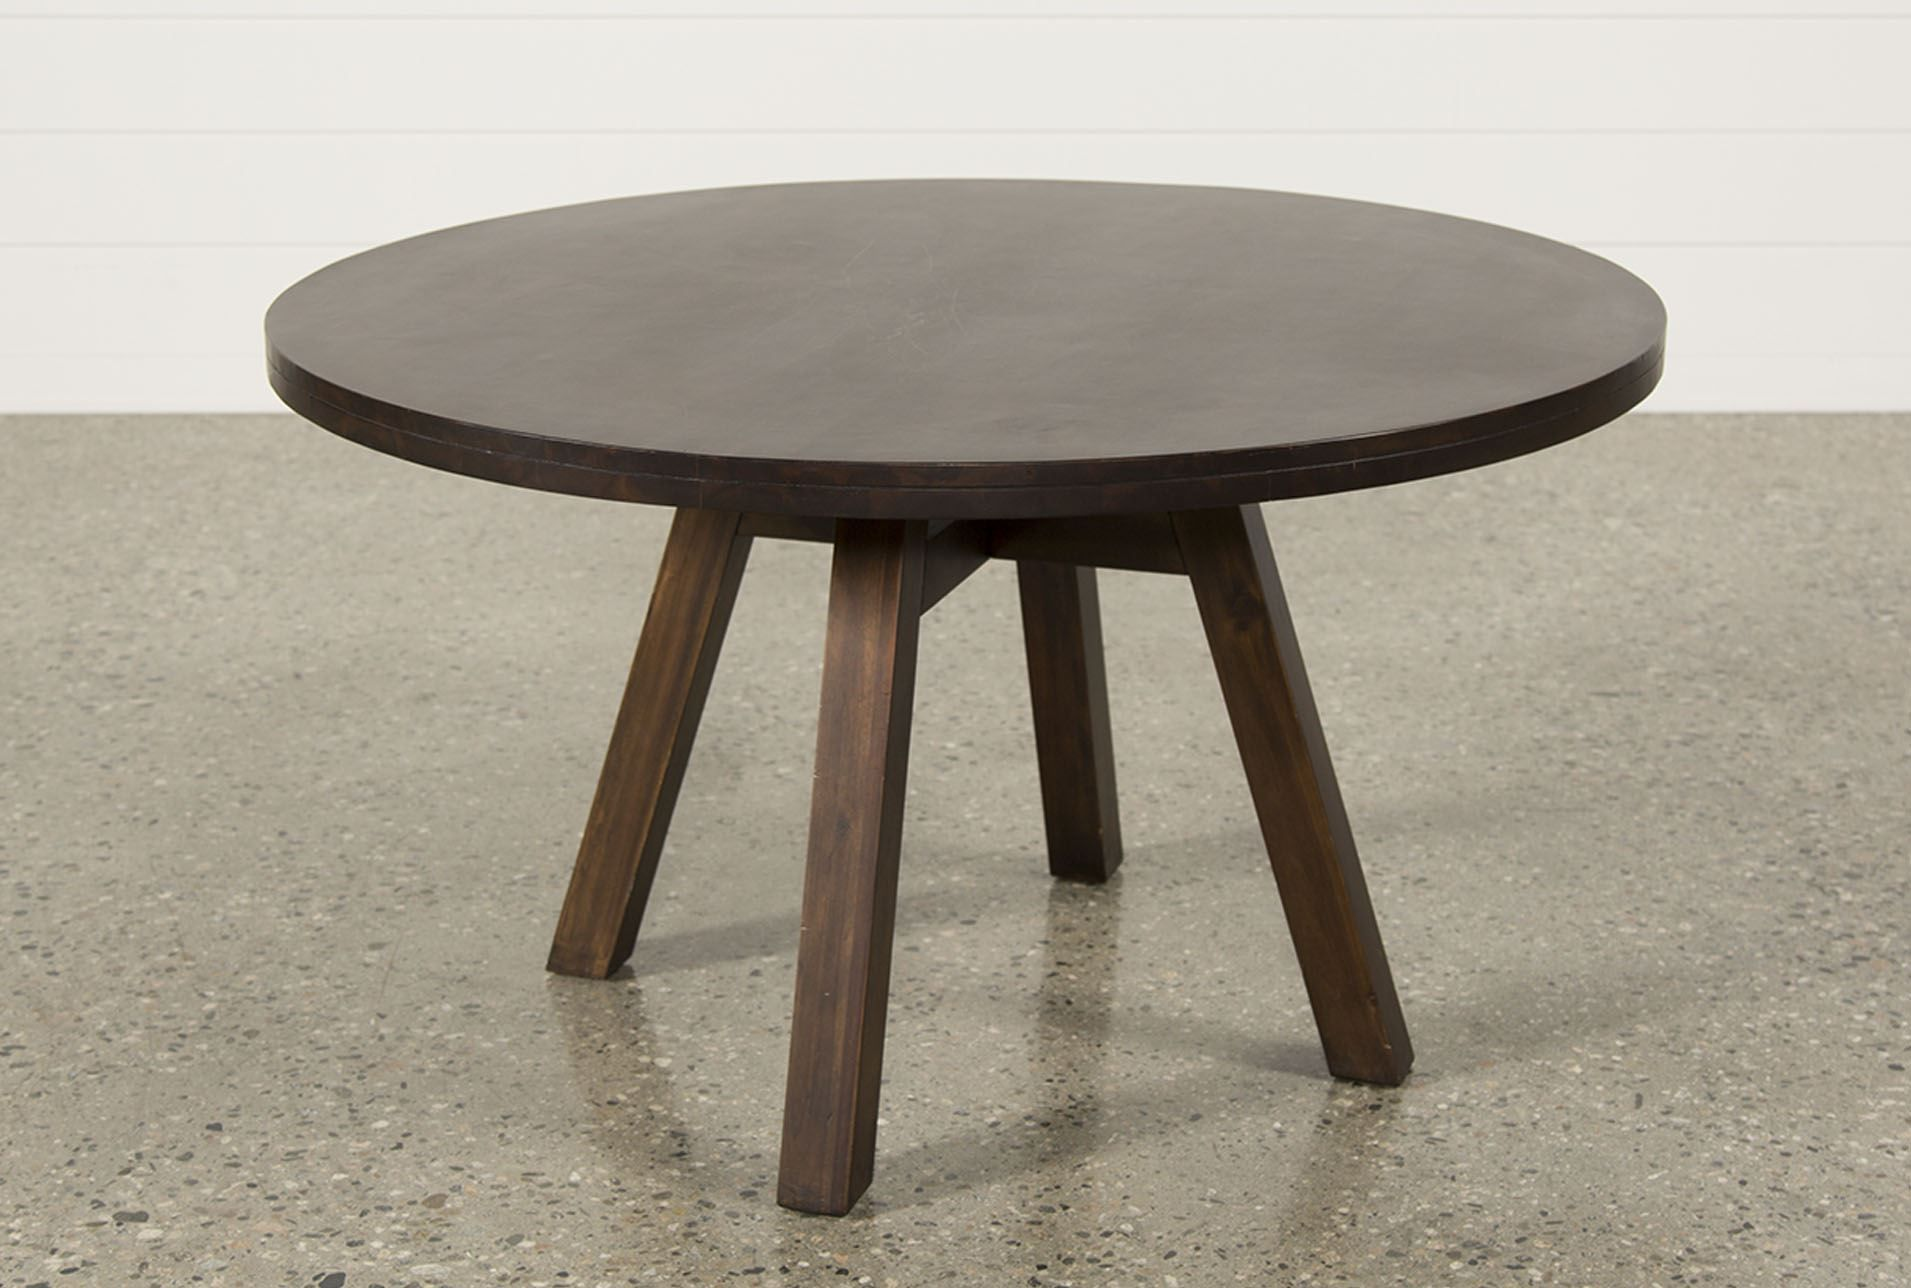 Blake Ii Round Dining Table Living Table Round Dining Round